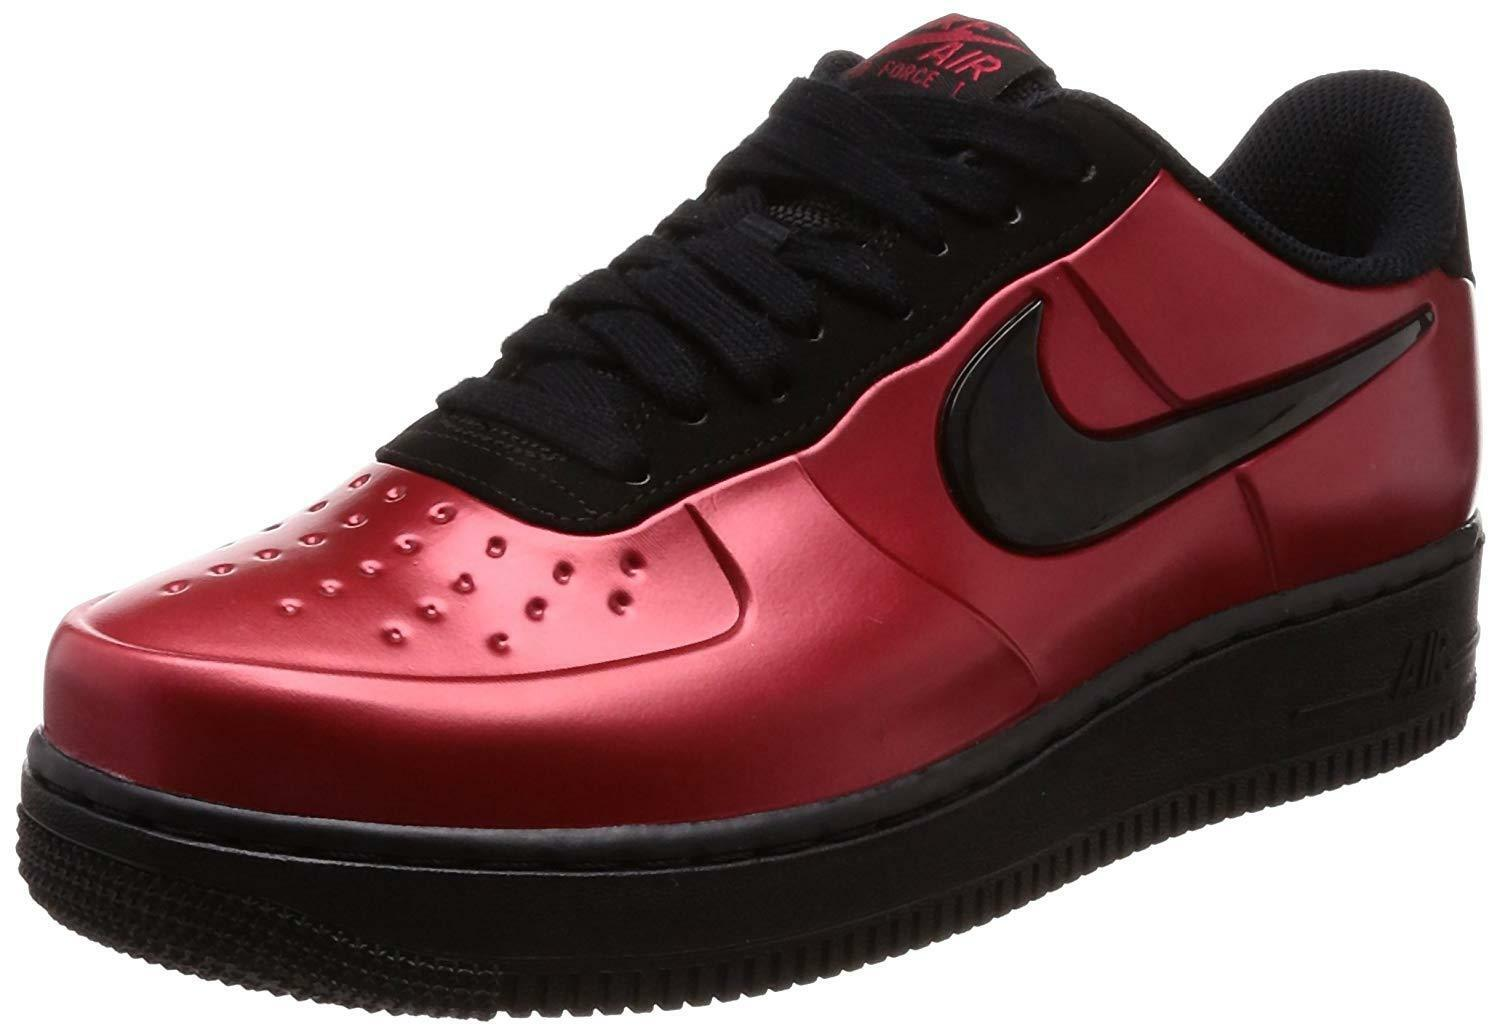 Nike Air Force 1 Foamposite Pro Cup Gym Red Black (AJ3664 601)